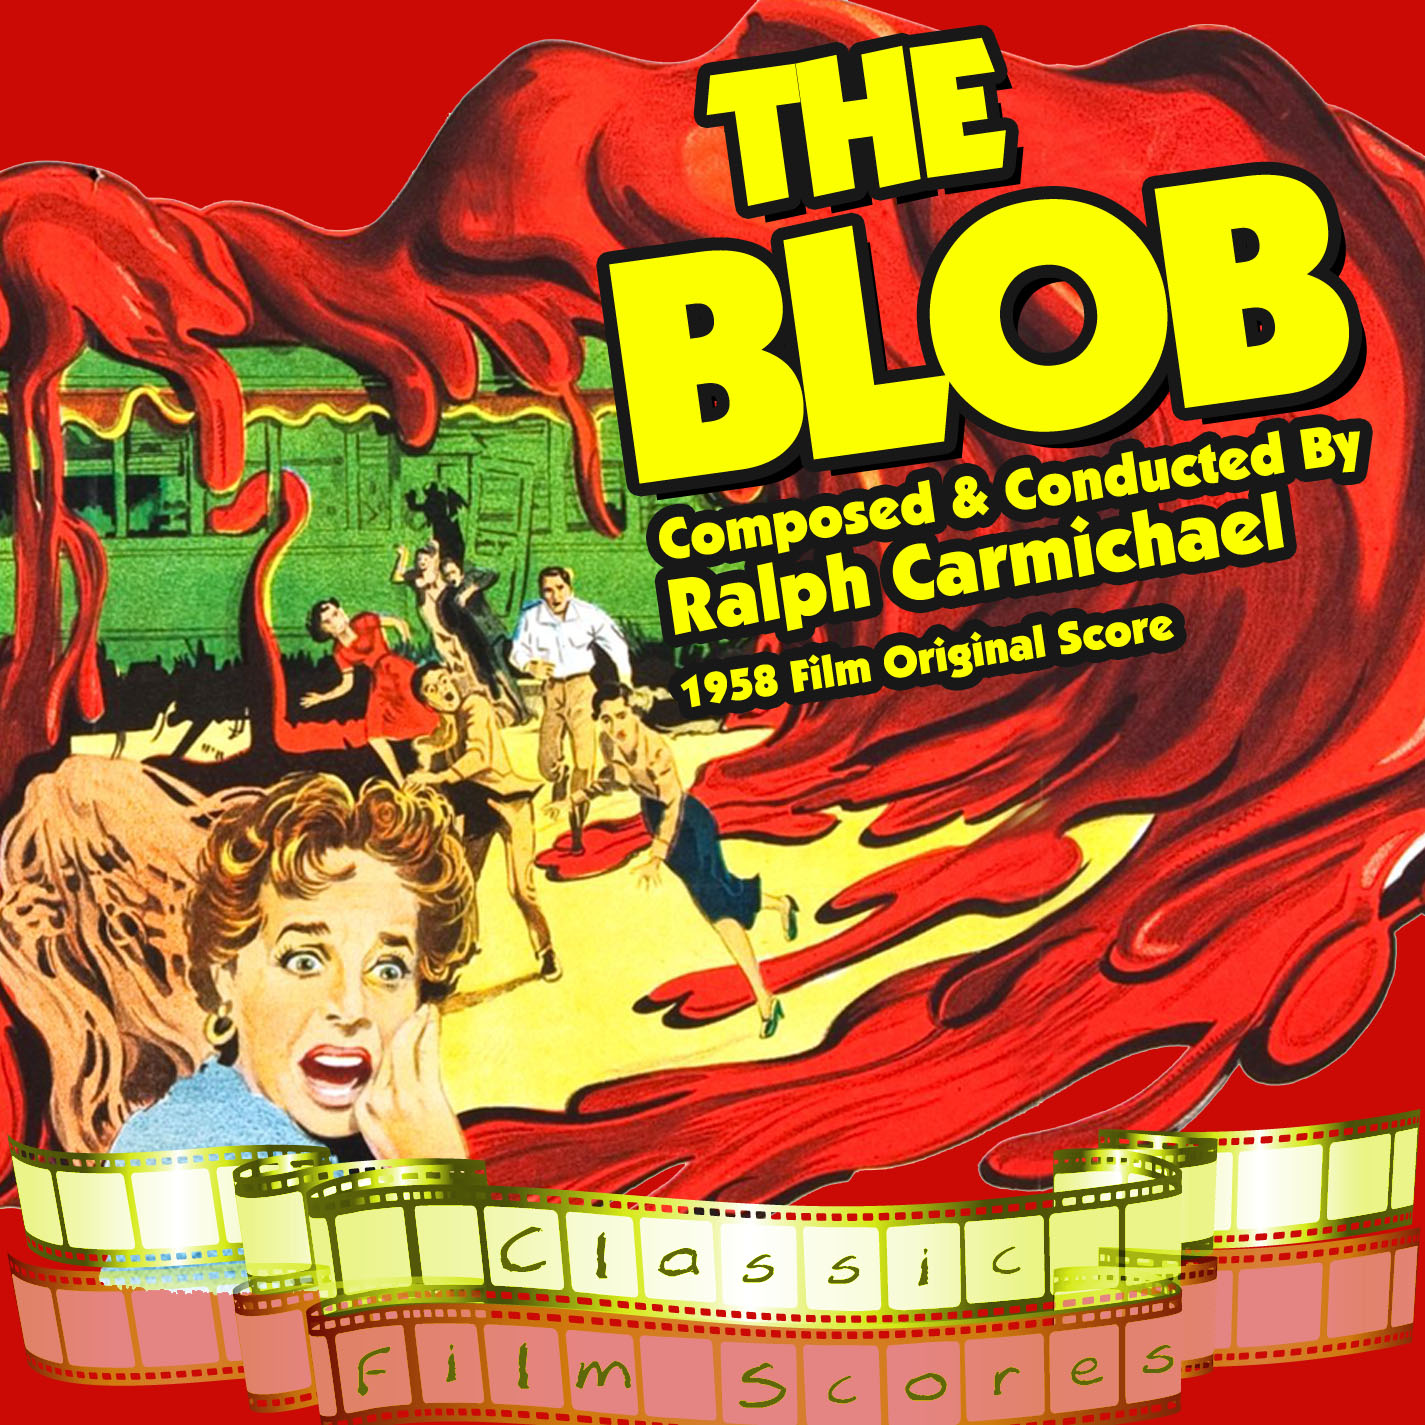 The Blob is back!